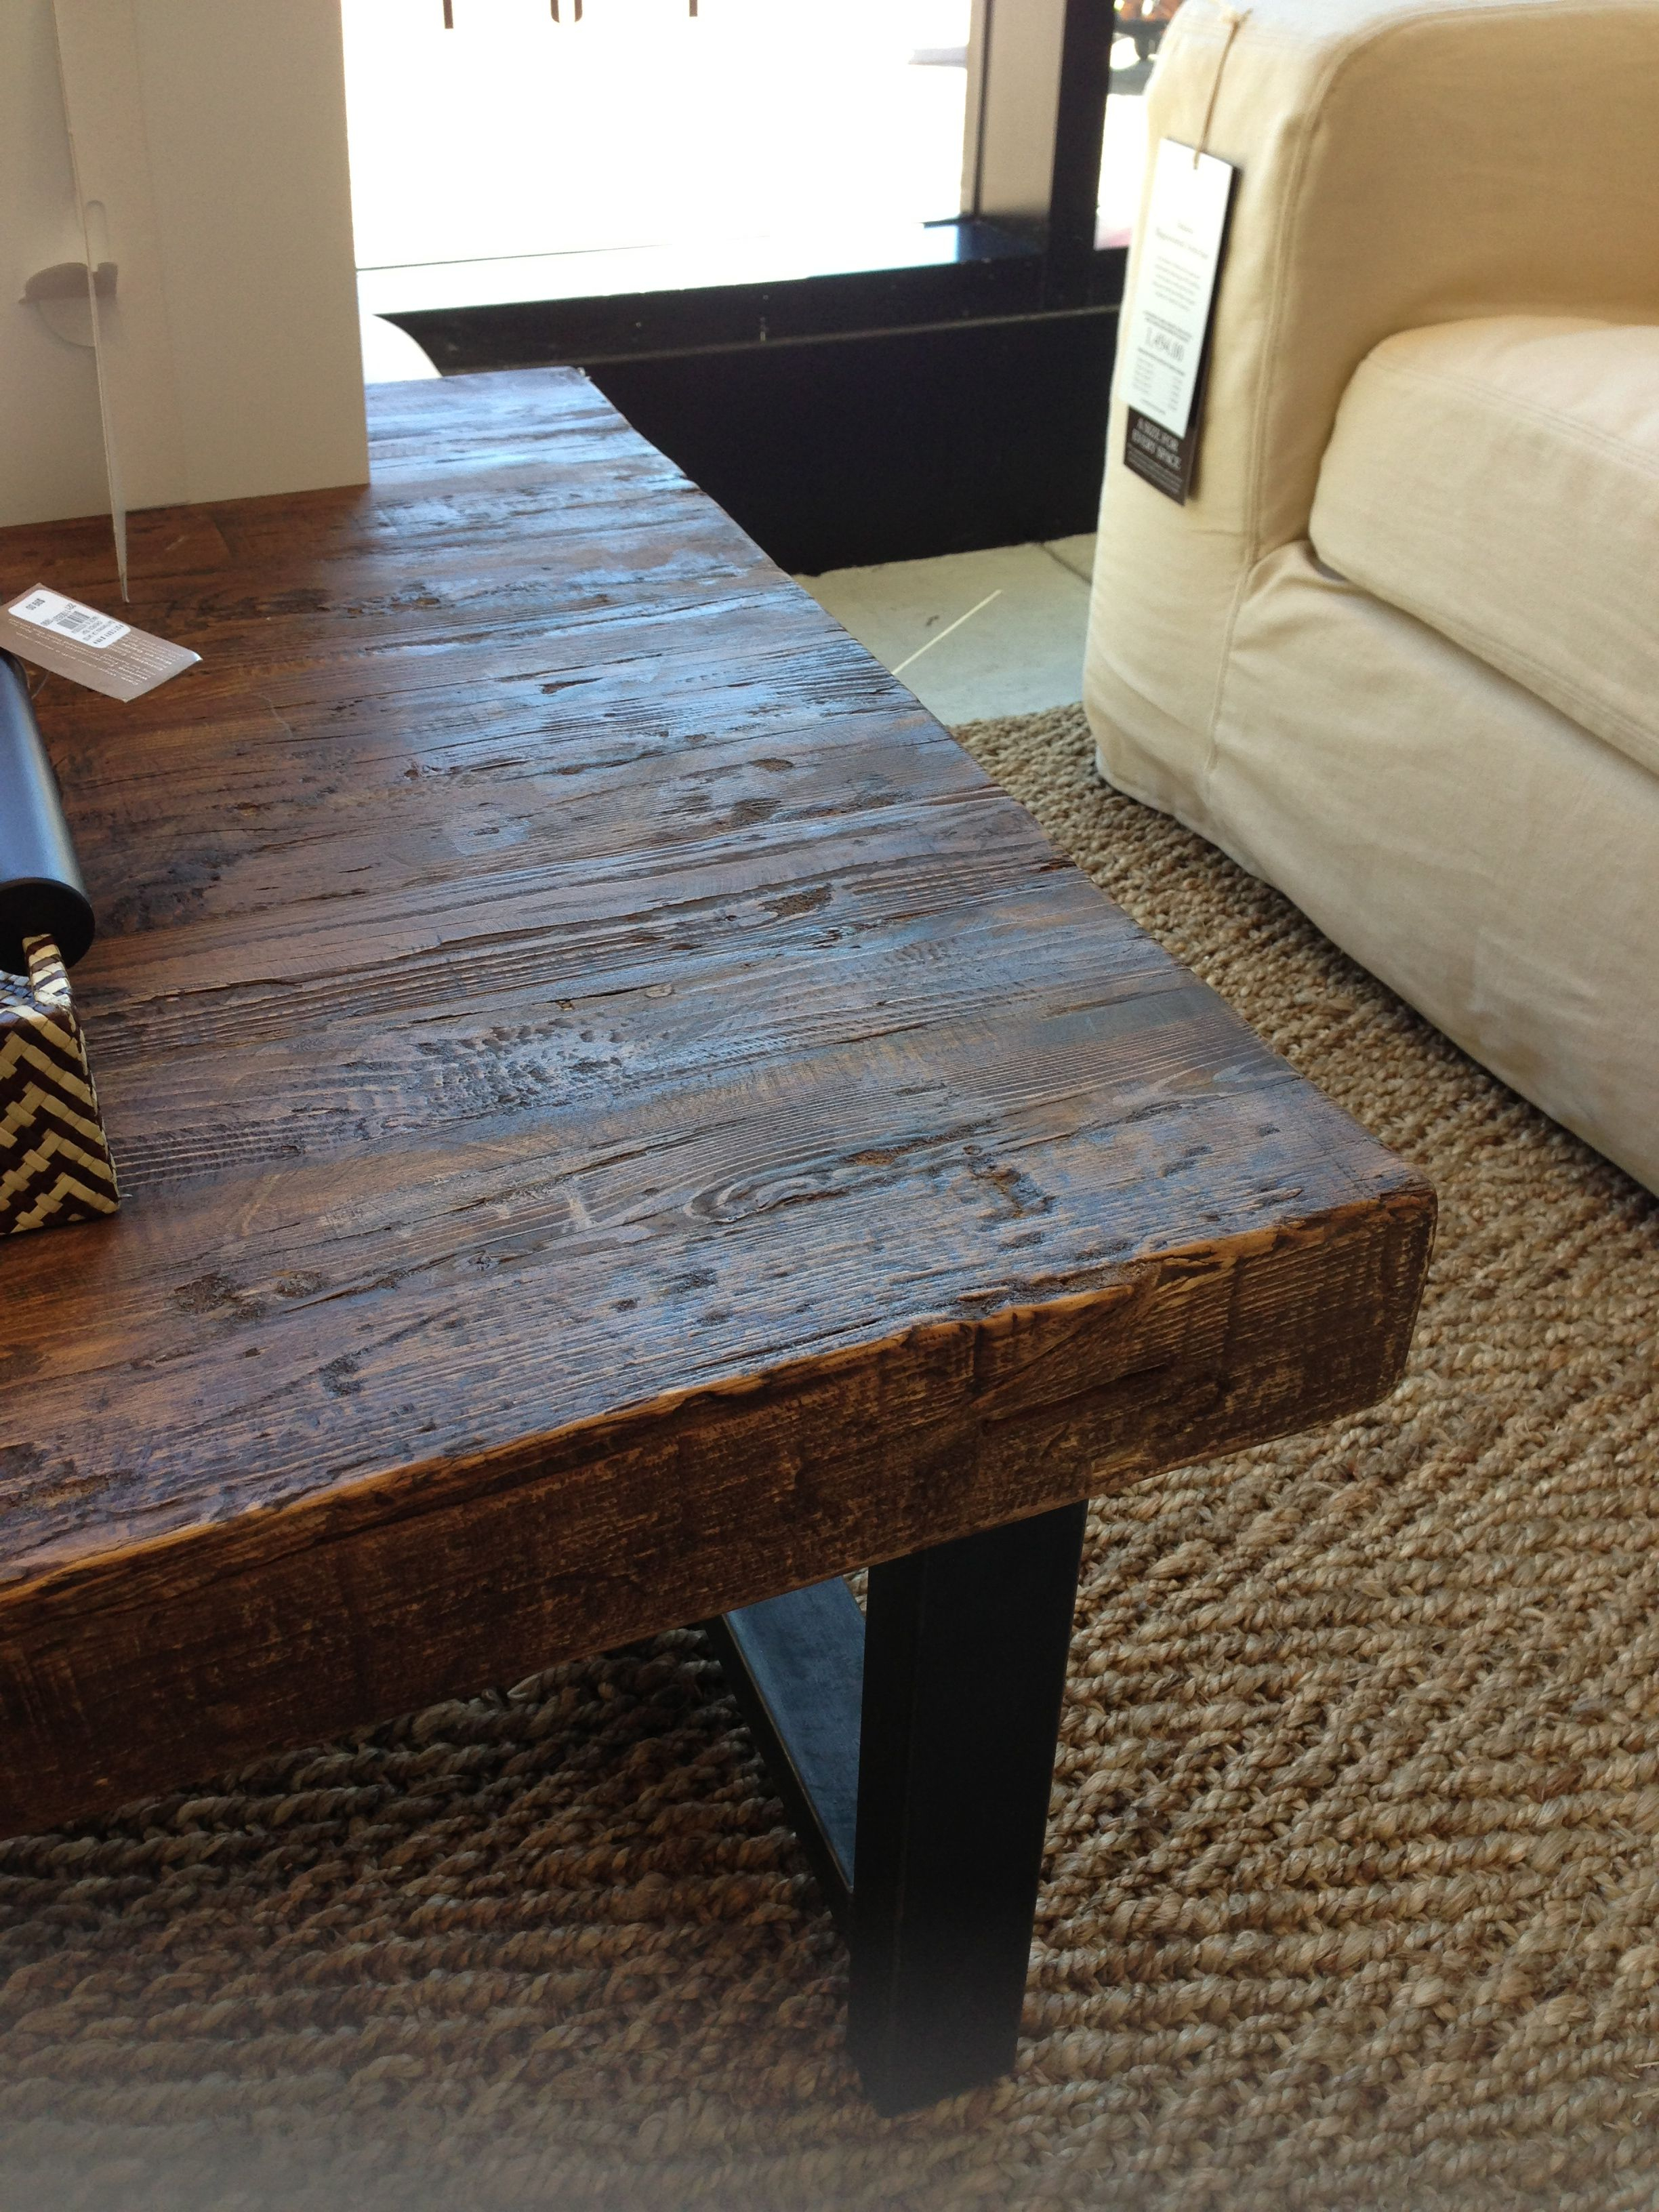 Griffin Reclaimed Wood Coffee Table Charleston Living Room Diy throughout sizing 2448 X 3264